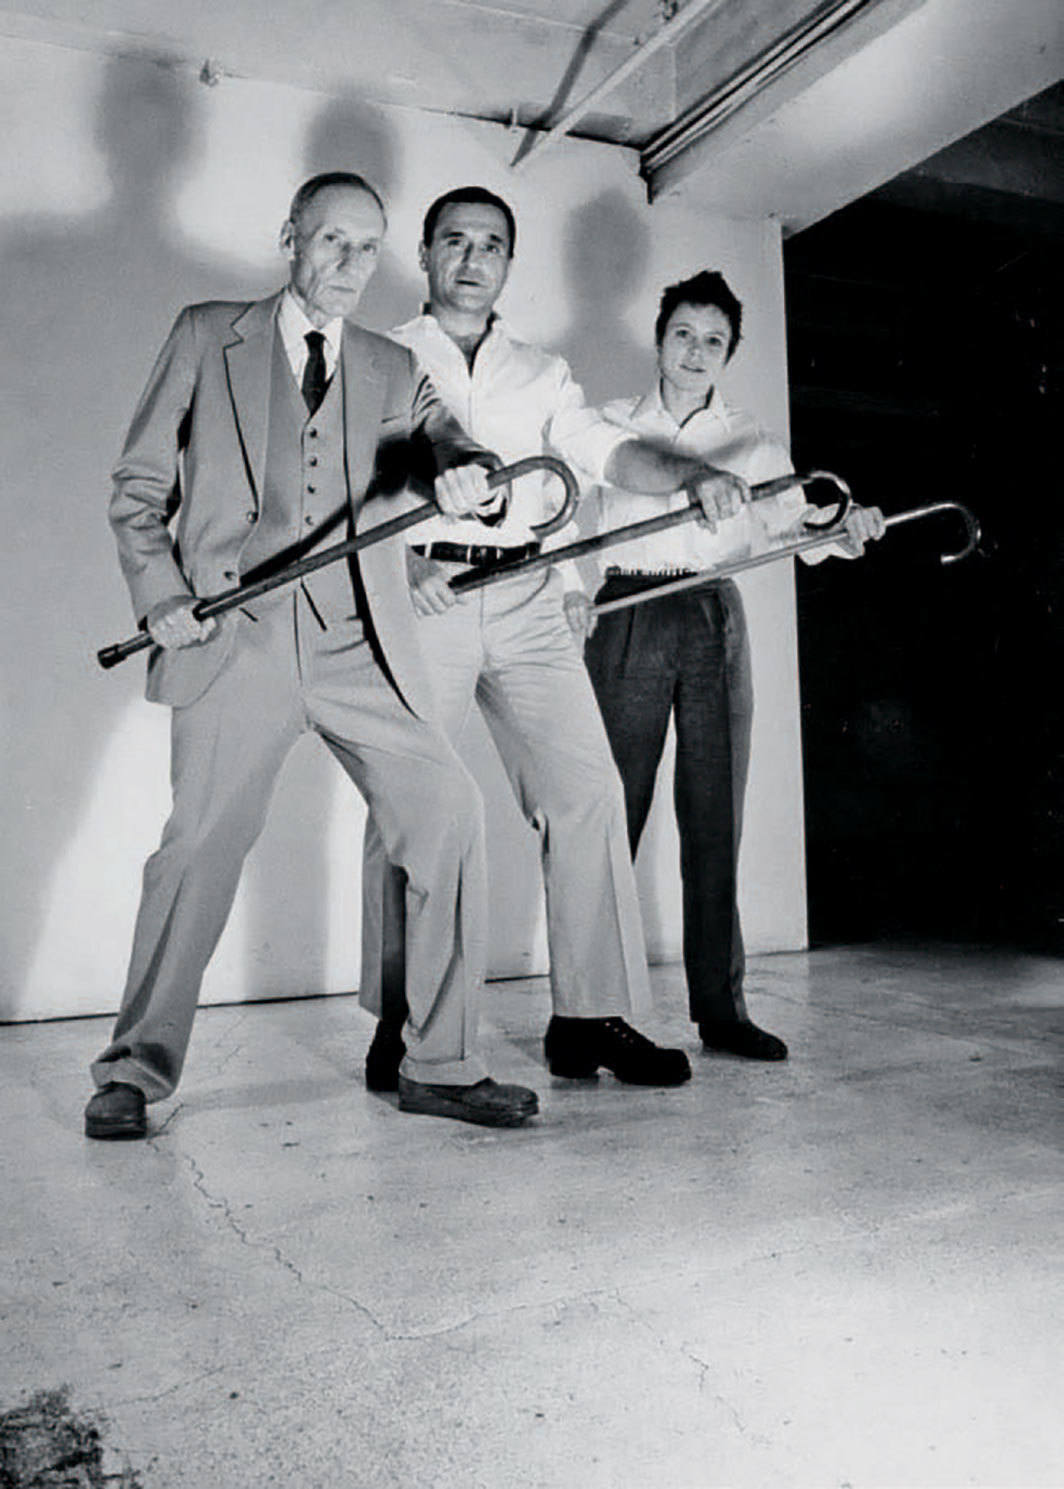 William S. Burroughs, John Giorno, Laurie Anderson, New York, 1981. From the album art for Laurie Anderson, John Giorno, and William S. Burroughs's You're the Guy I Want to Share My Money With (Giorno Poetry Systems, 1981). Photo: Jimmy DeSana.